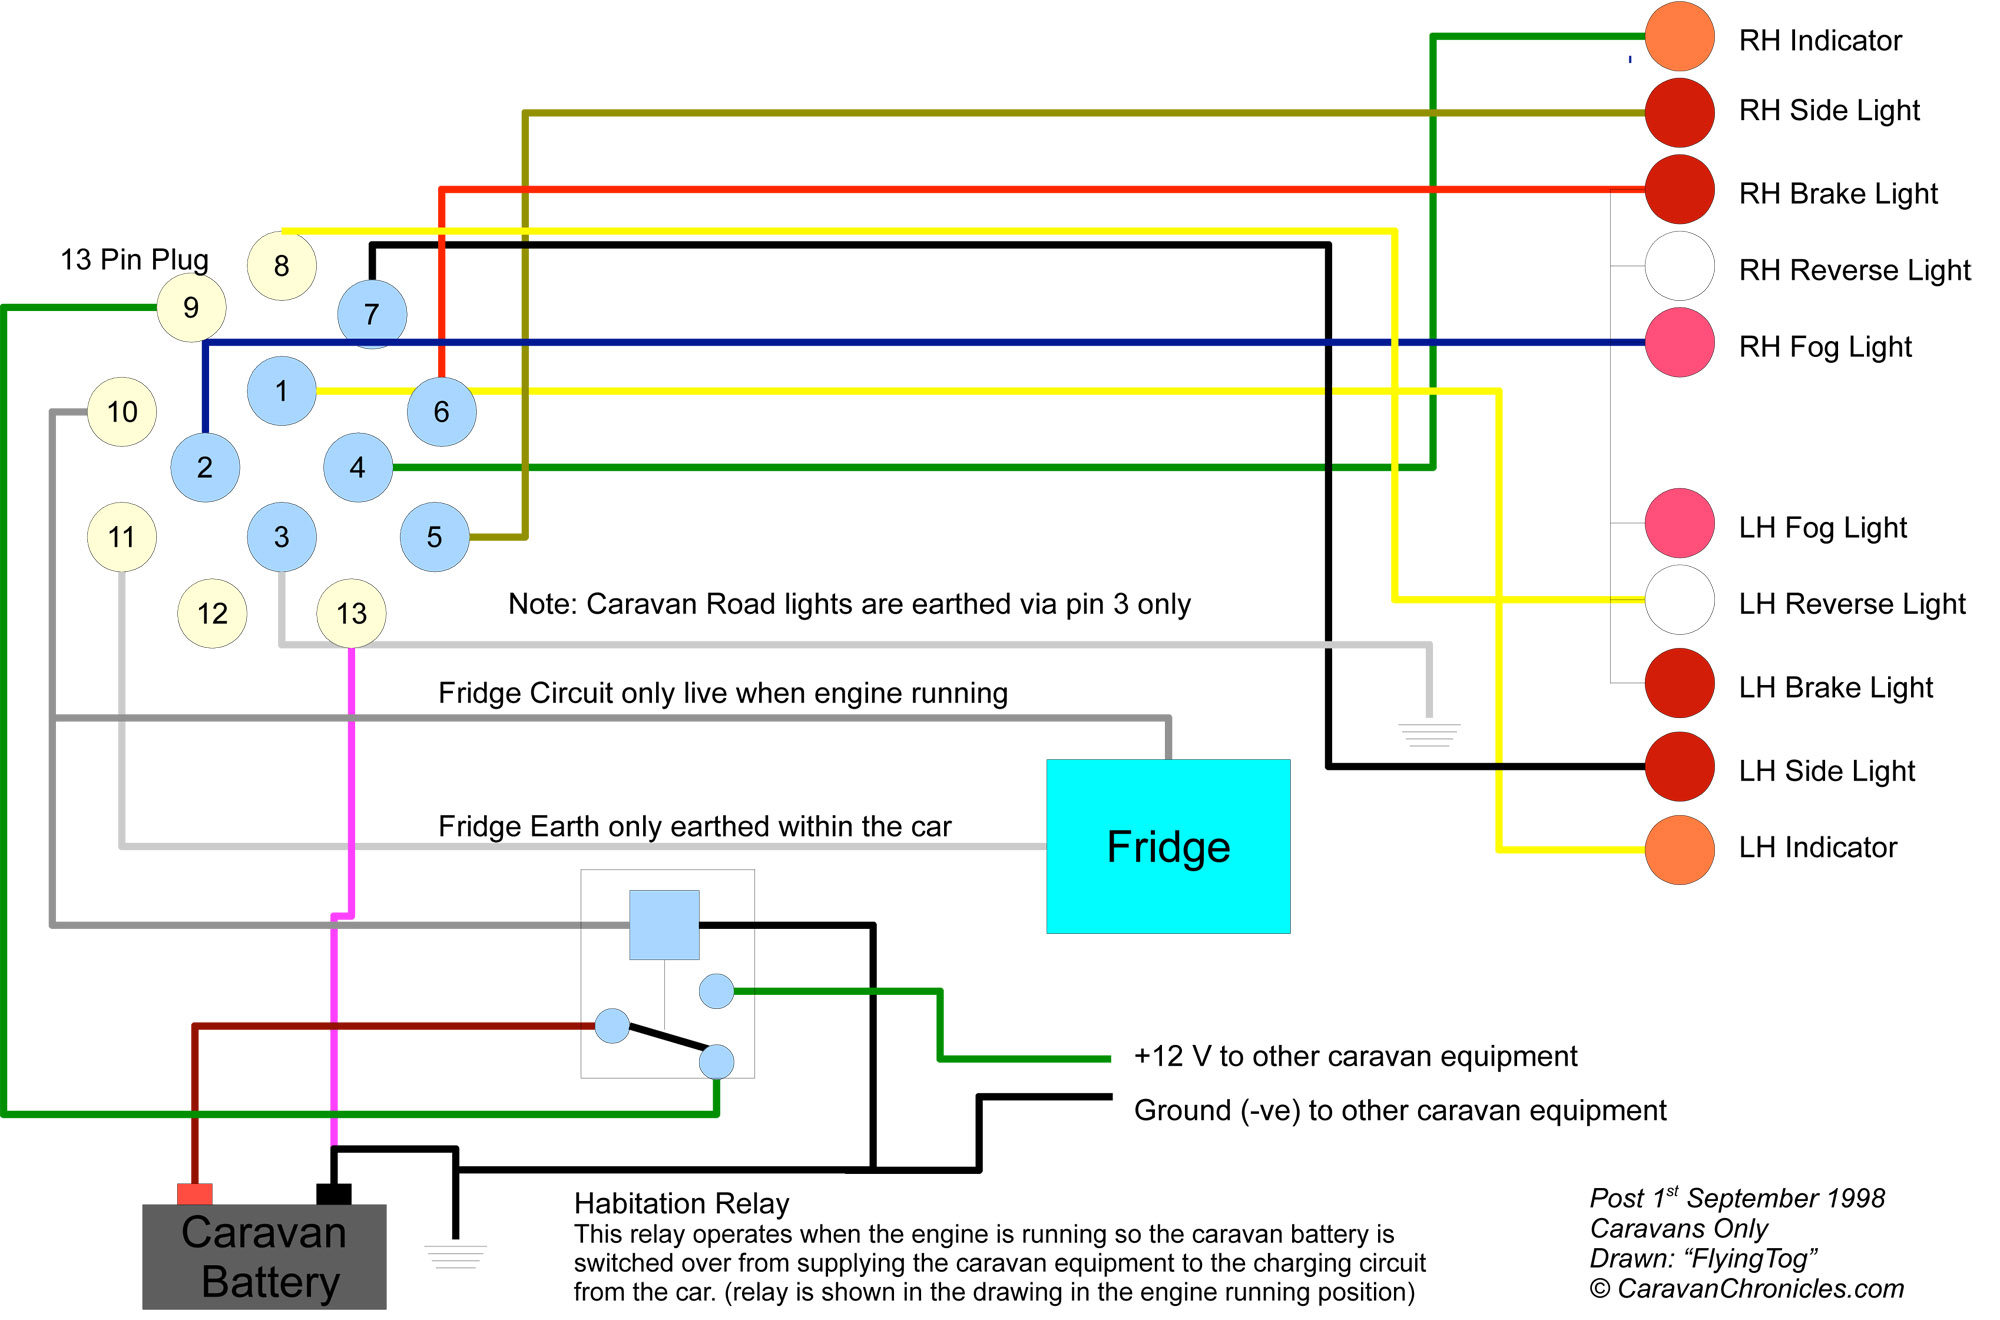 Automotive Wiring Chart Understanding Caravan And Tow Car Electrics Chronicles Typical 13 Pin Connected